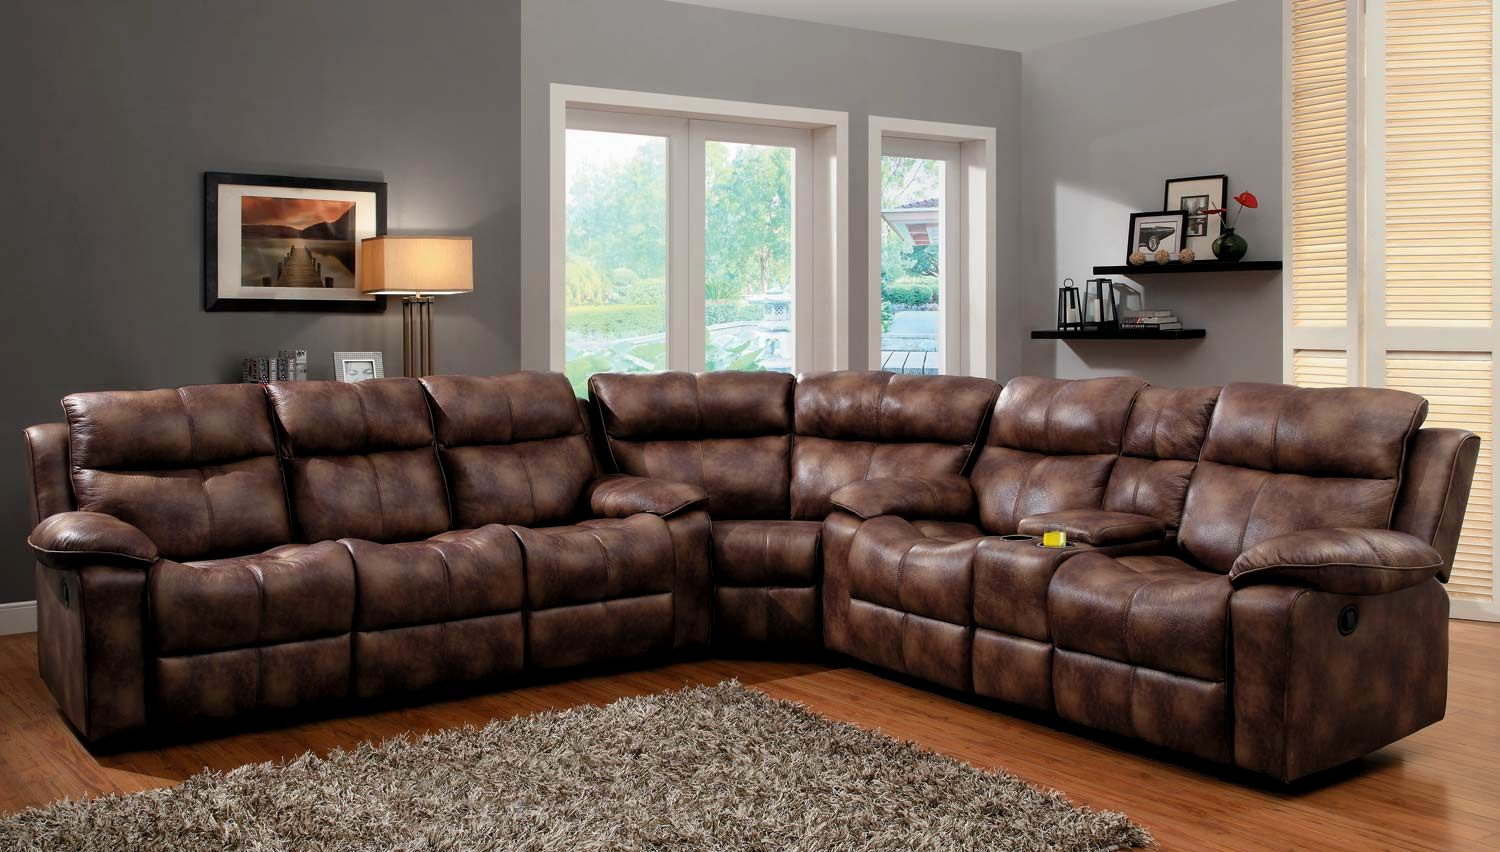 stylish sams leather sofa photo-Excellent Sams Leather sofa Inspiration